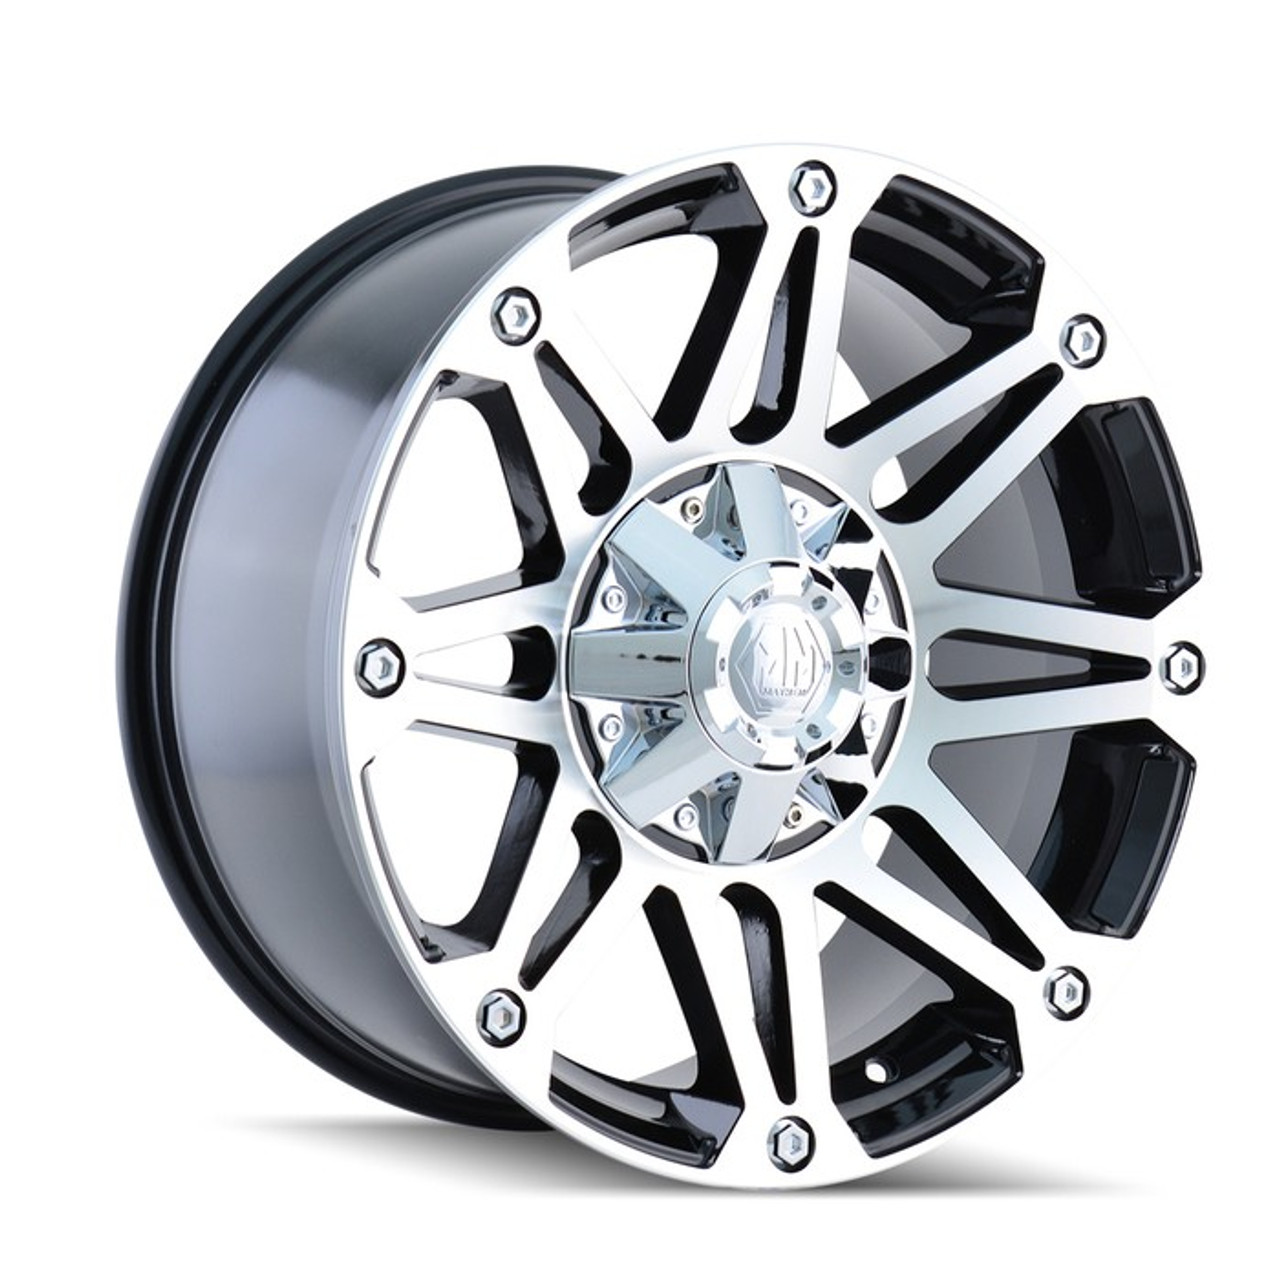 Pacer 166SB Nighthawk Satin Black 17x8.5 8x6.5-6mm 166SB-78581-06